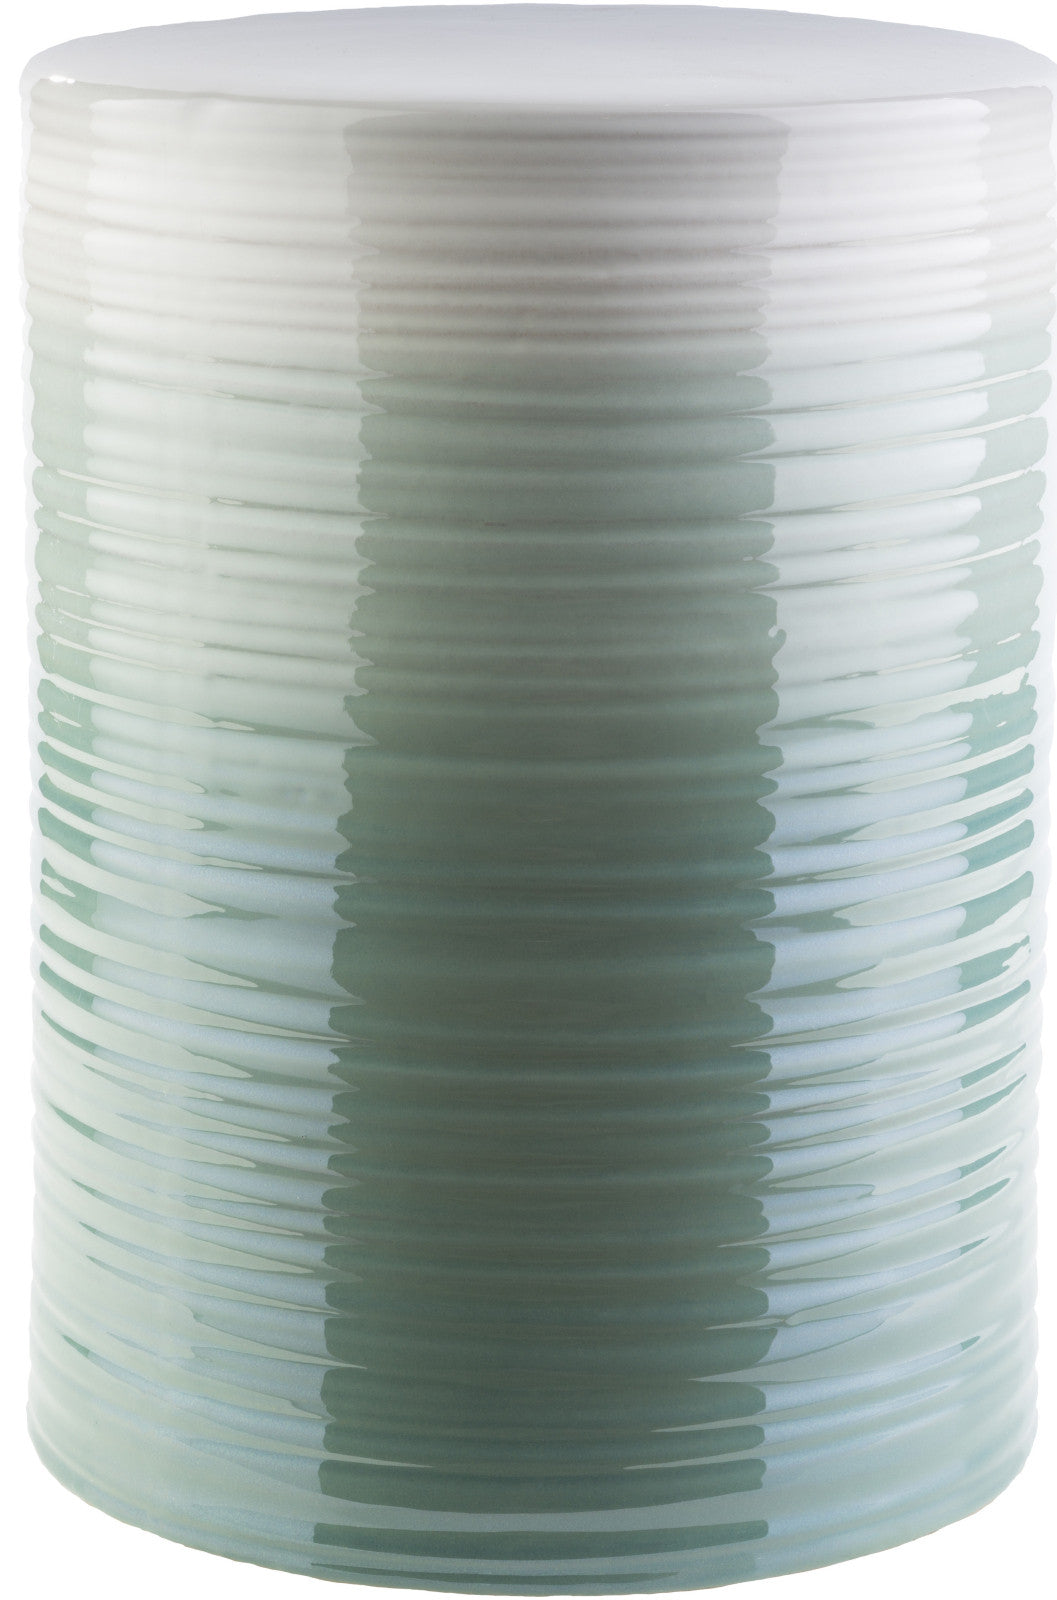 Surya Waverly WAV-325 Vase main image